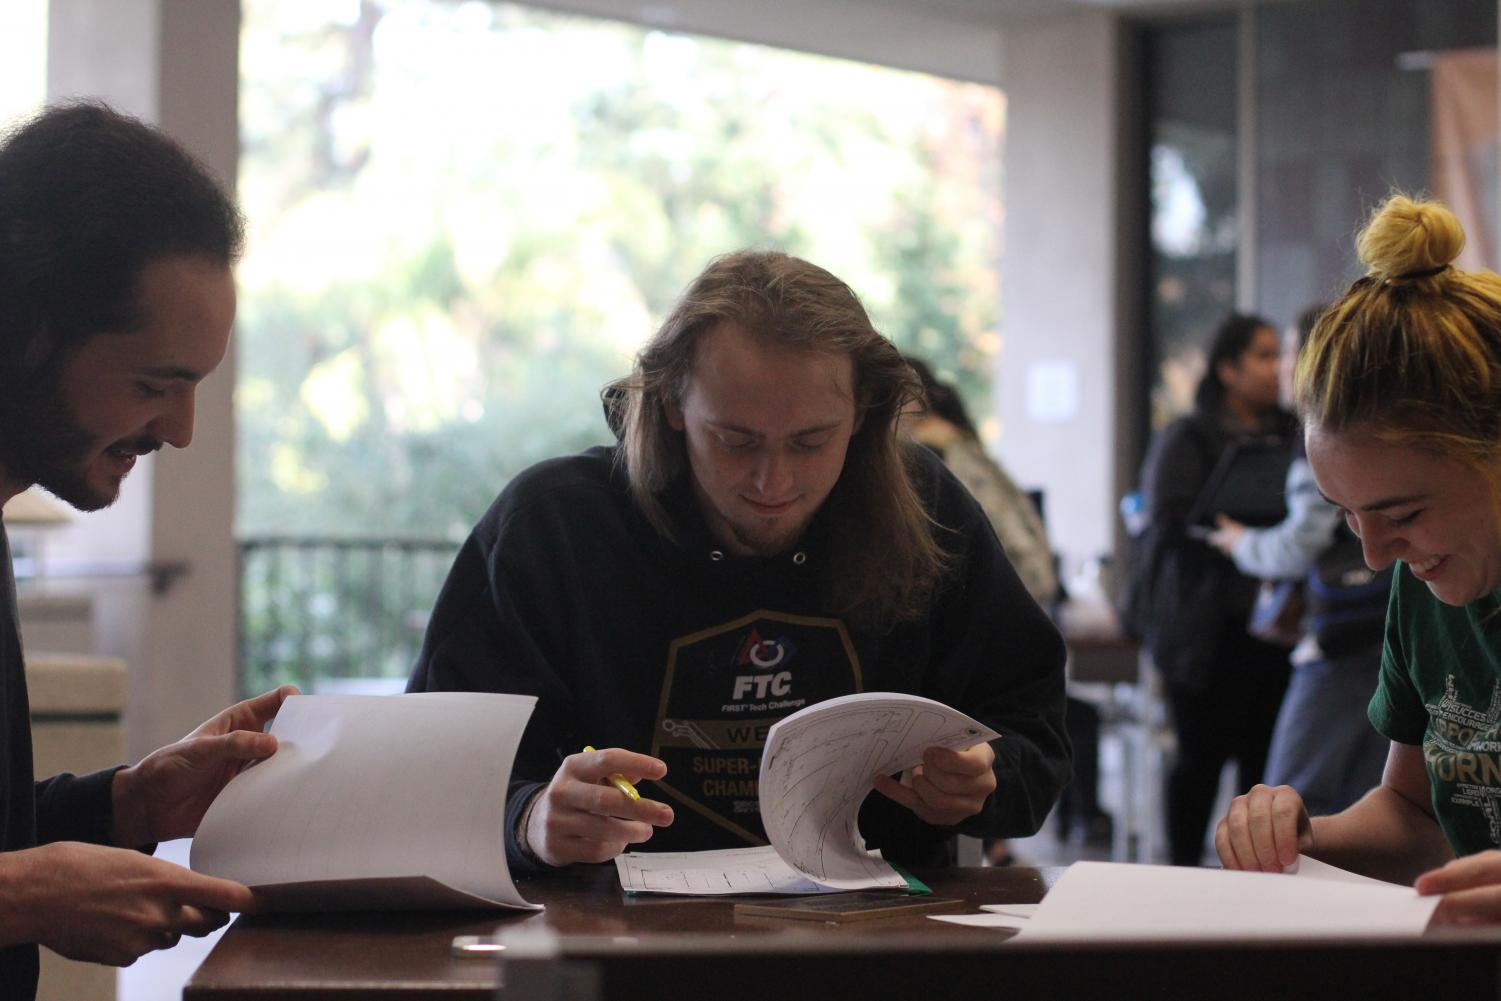 From left to right, Marco Bonanni, Timothy Hagen and Lauren Rice look over plans for their senior project on Dec. 1. They are among five students working on having parking tracking set up for Lots 9 and 10 by fall 2018.